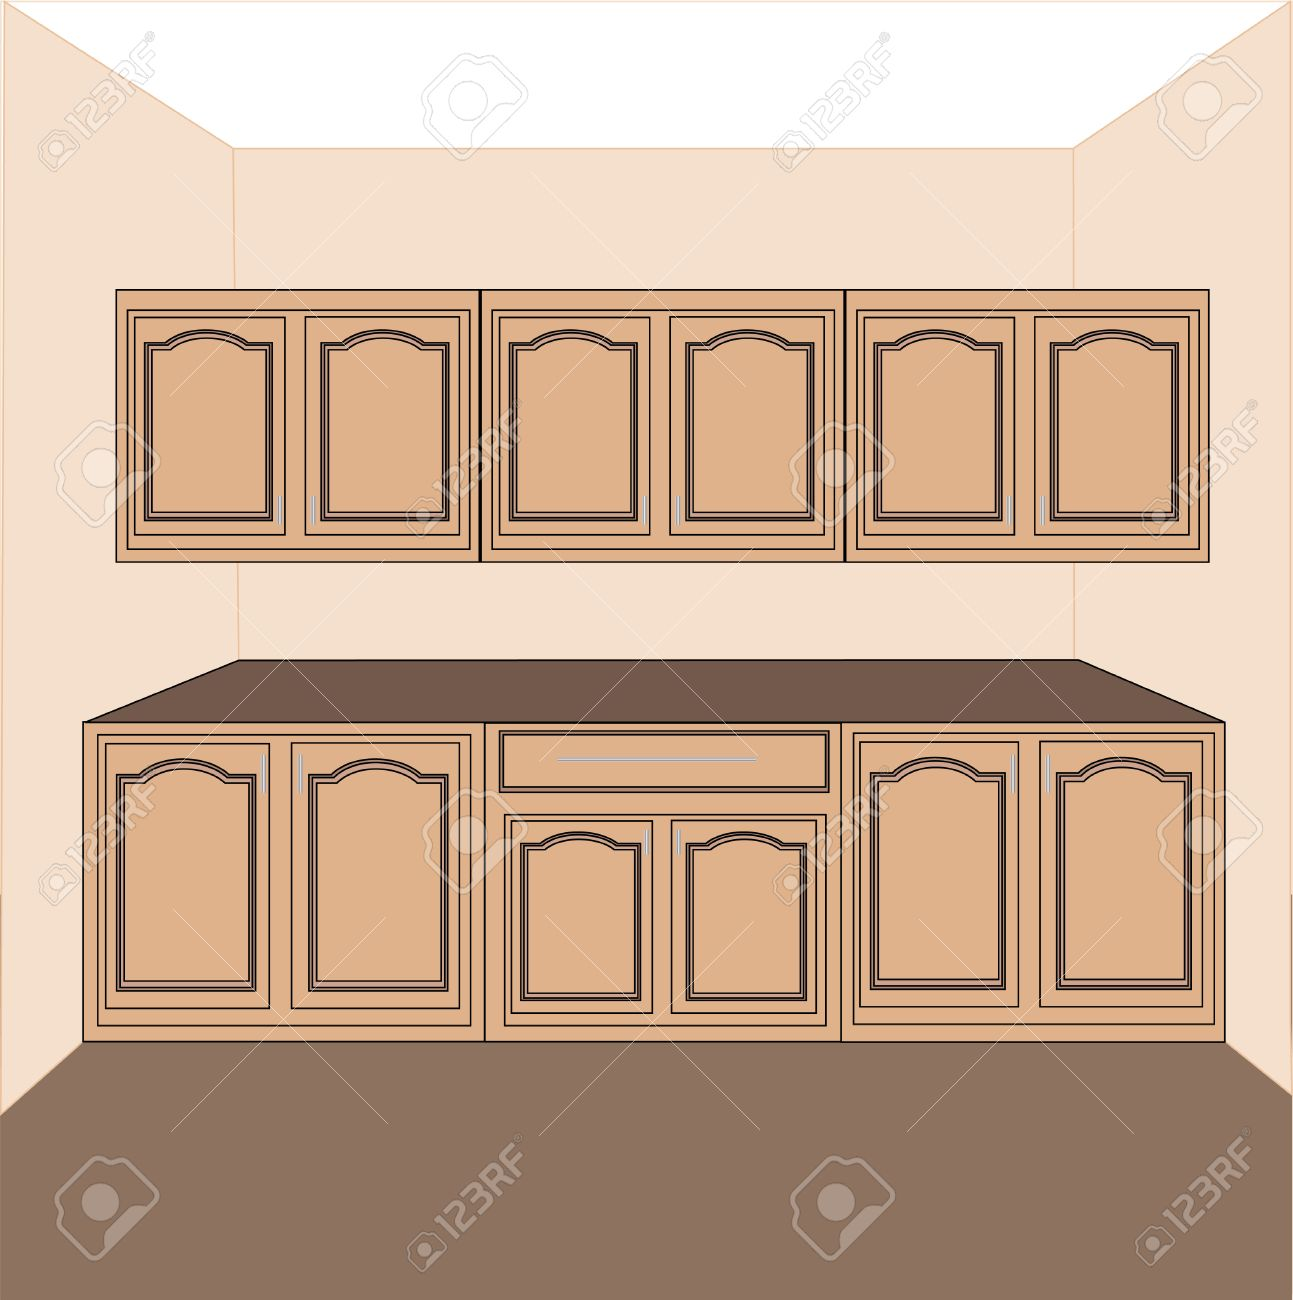 Cartoon kitchen counter gallery - Cartoon Kitchen Counter Kitchen Countertop Kitchen Laundry Cabinets Vector